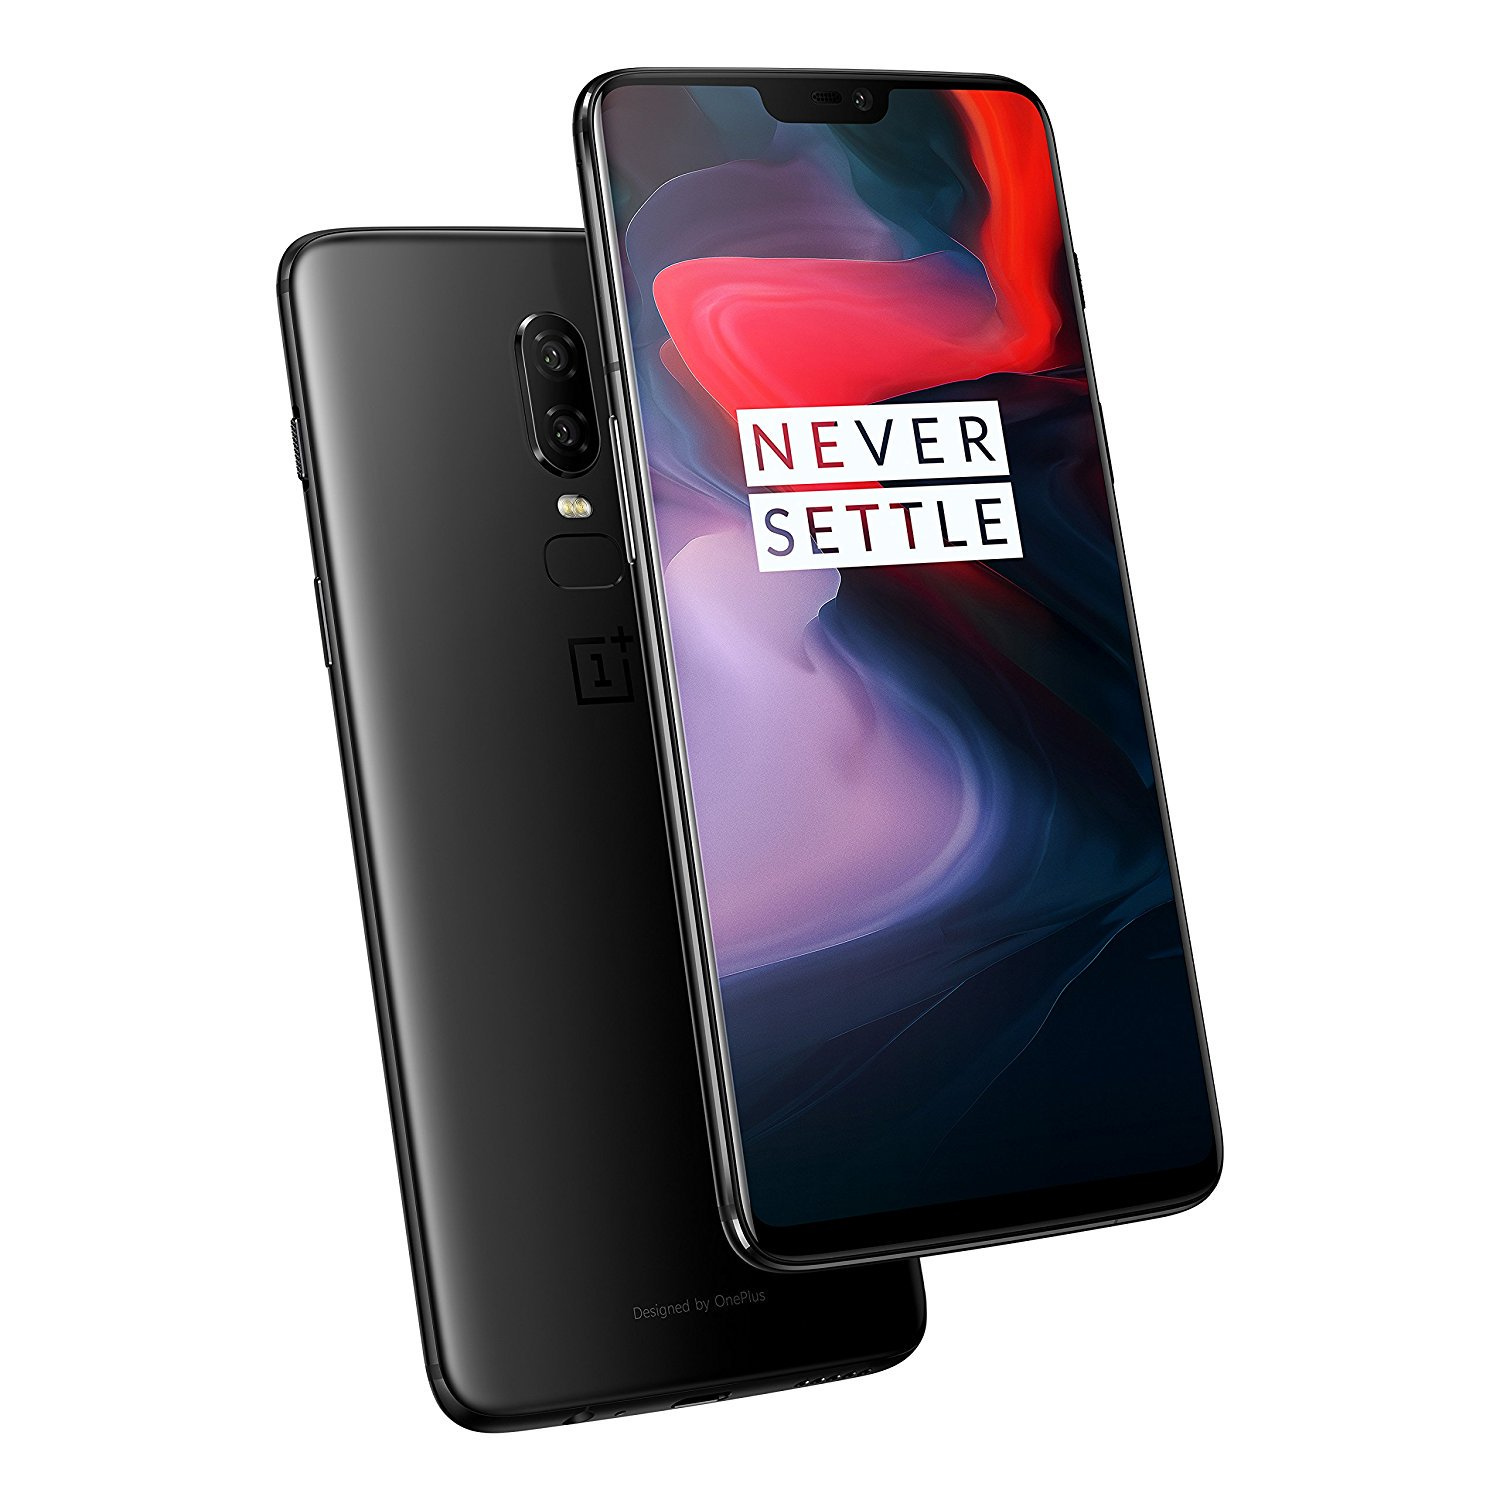 Amazon Listing reveals everything about the OnePlus 6 3